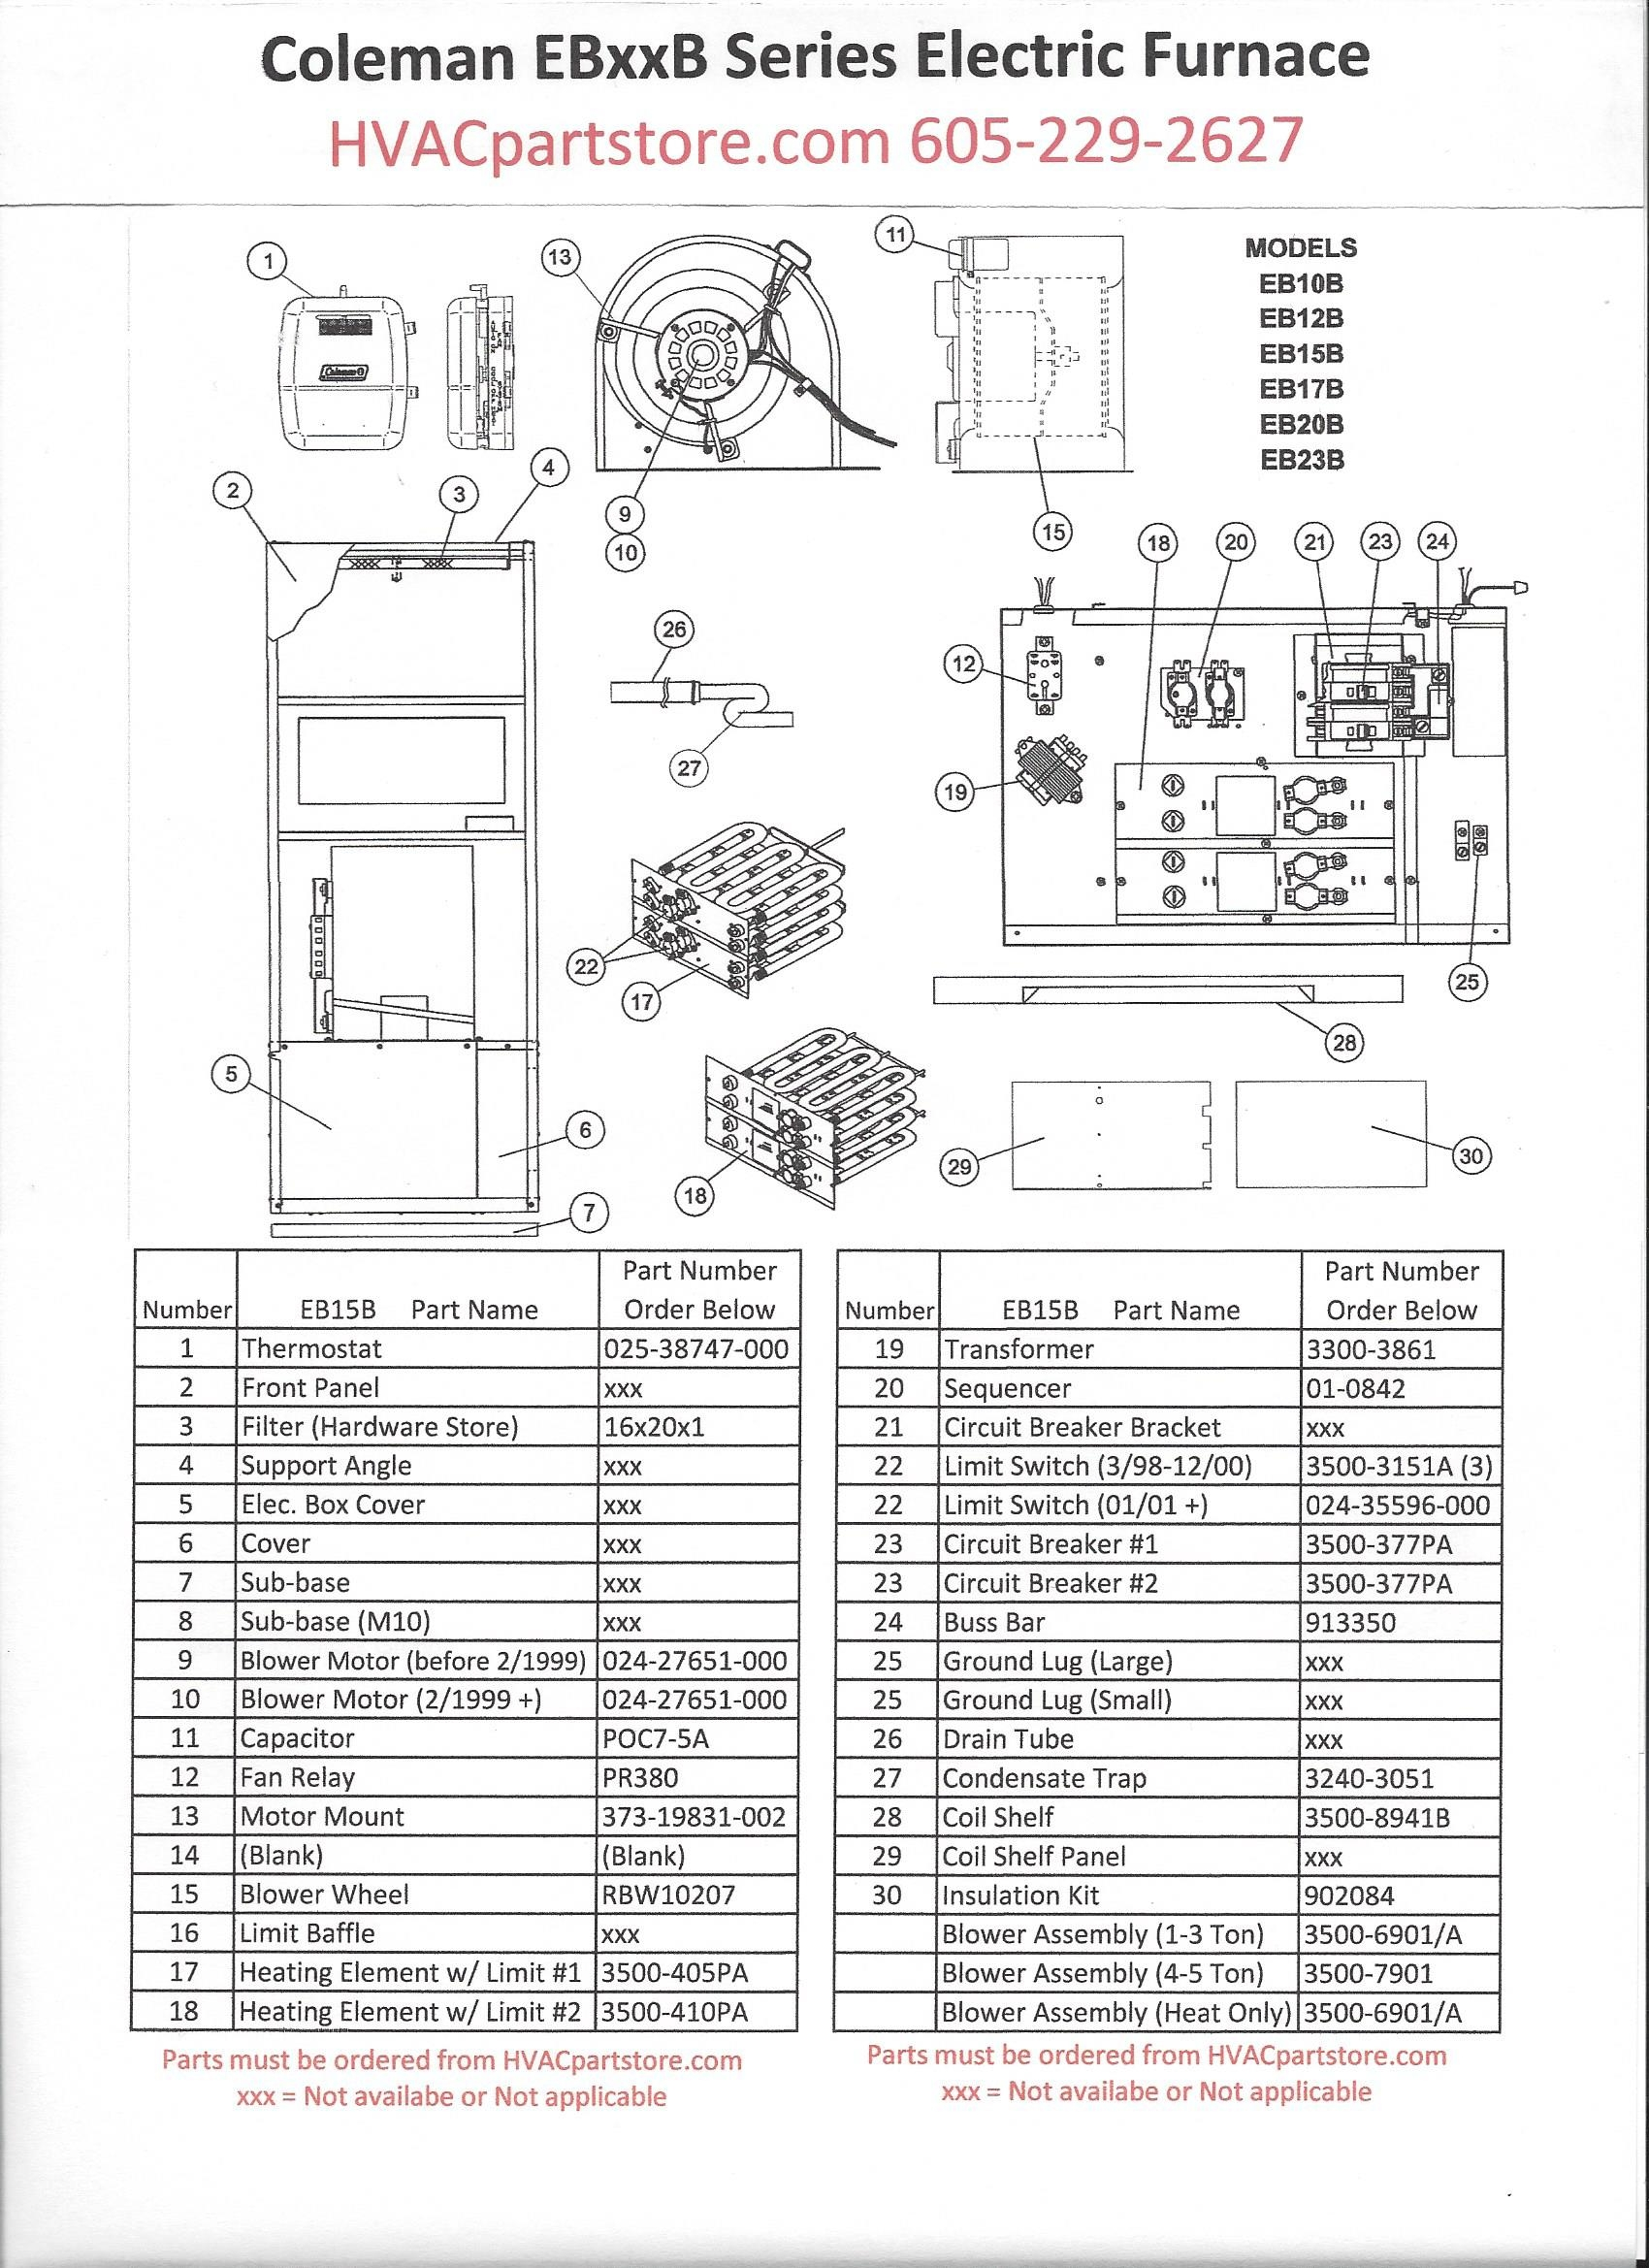 wiring diagram electric furnaces coleman furnace wiring diagram source  wiring diagram electric furnaces coleman furnace #1